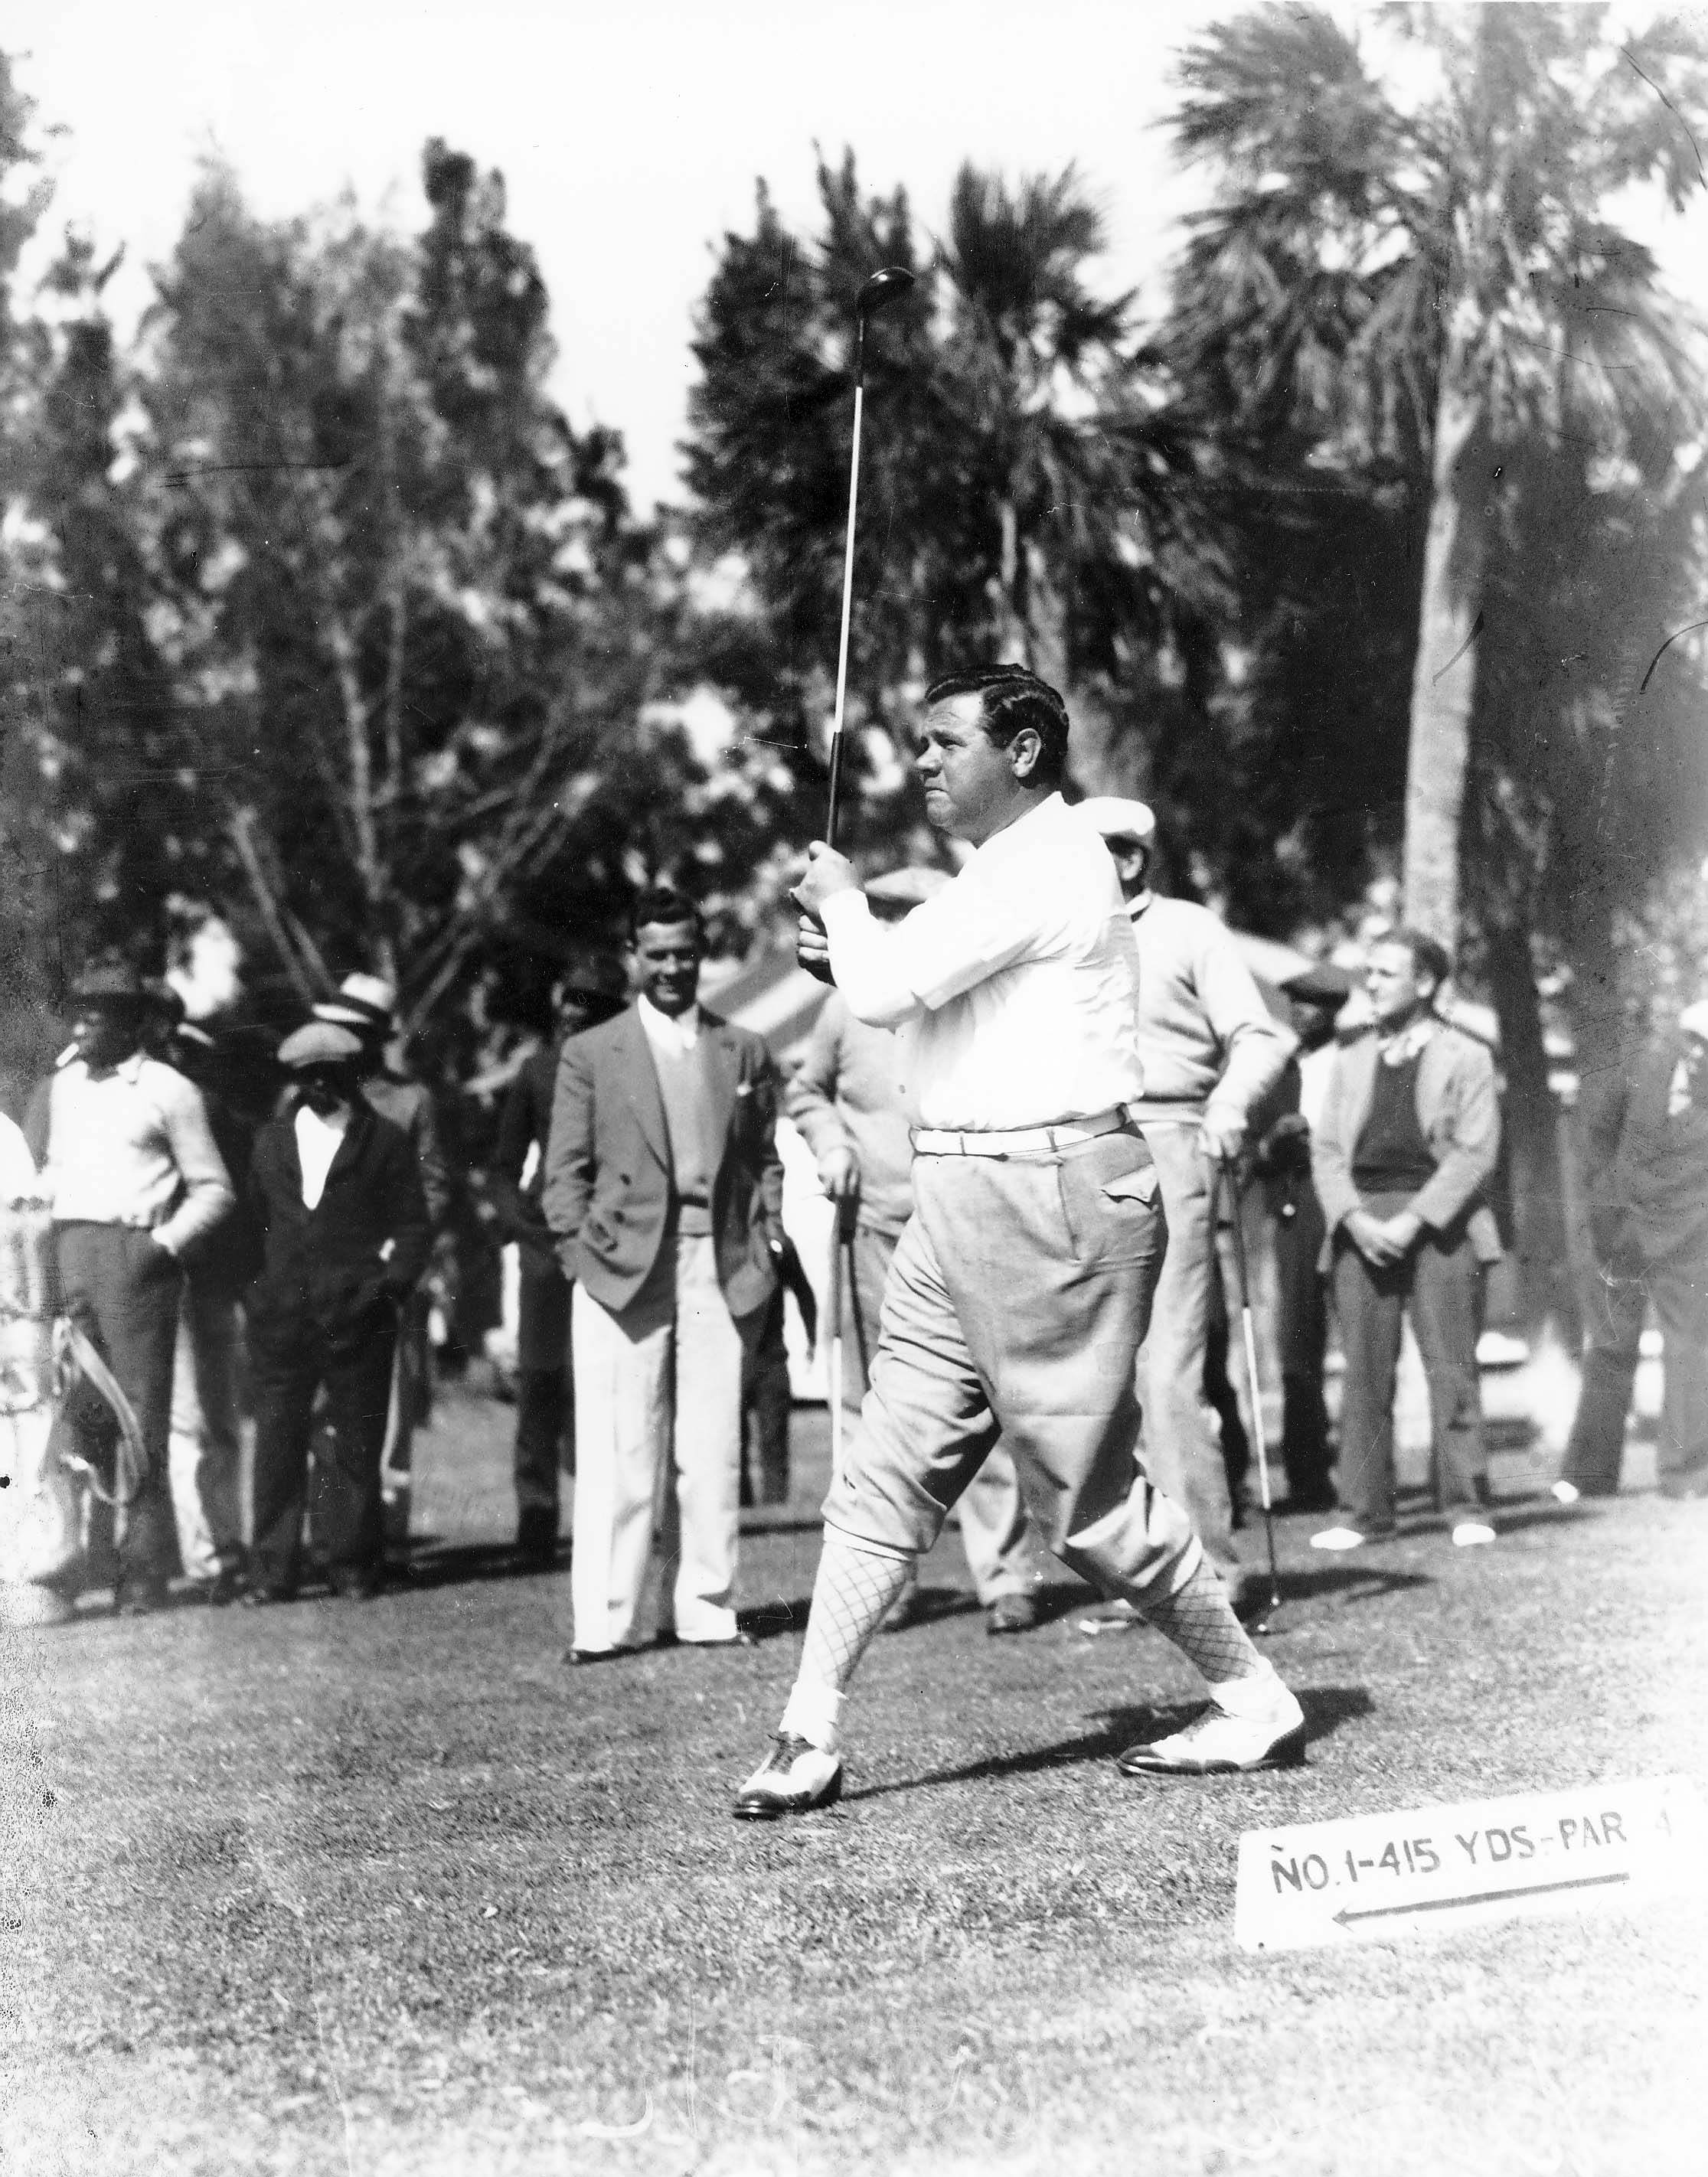 MONDAY FEBRUARY 3, 1936 - Babe Ruth  drives at The  Donald Ross  Course No. 1 Tee, 415 Yards, Par 4. Photograph courtesy of Sarasota County Historical Resources. Bobby Jones Golf Club Manager, Head Professional and President of the PGA of America  George R. Jacobus  admires the Babe's left-handed follow-through.